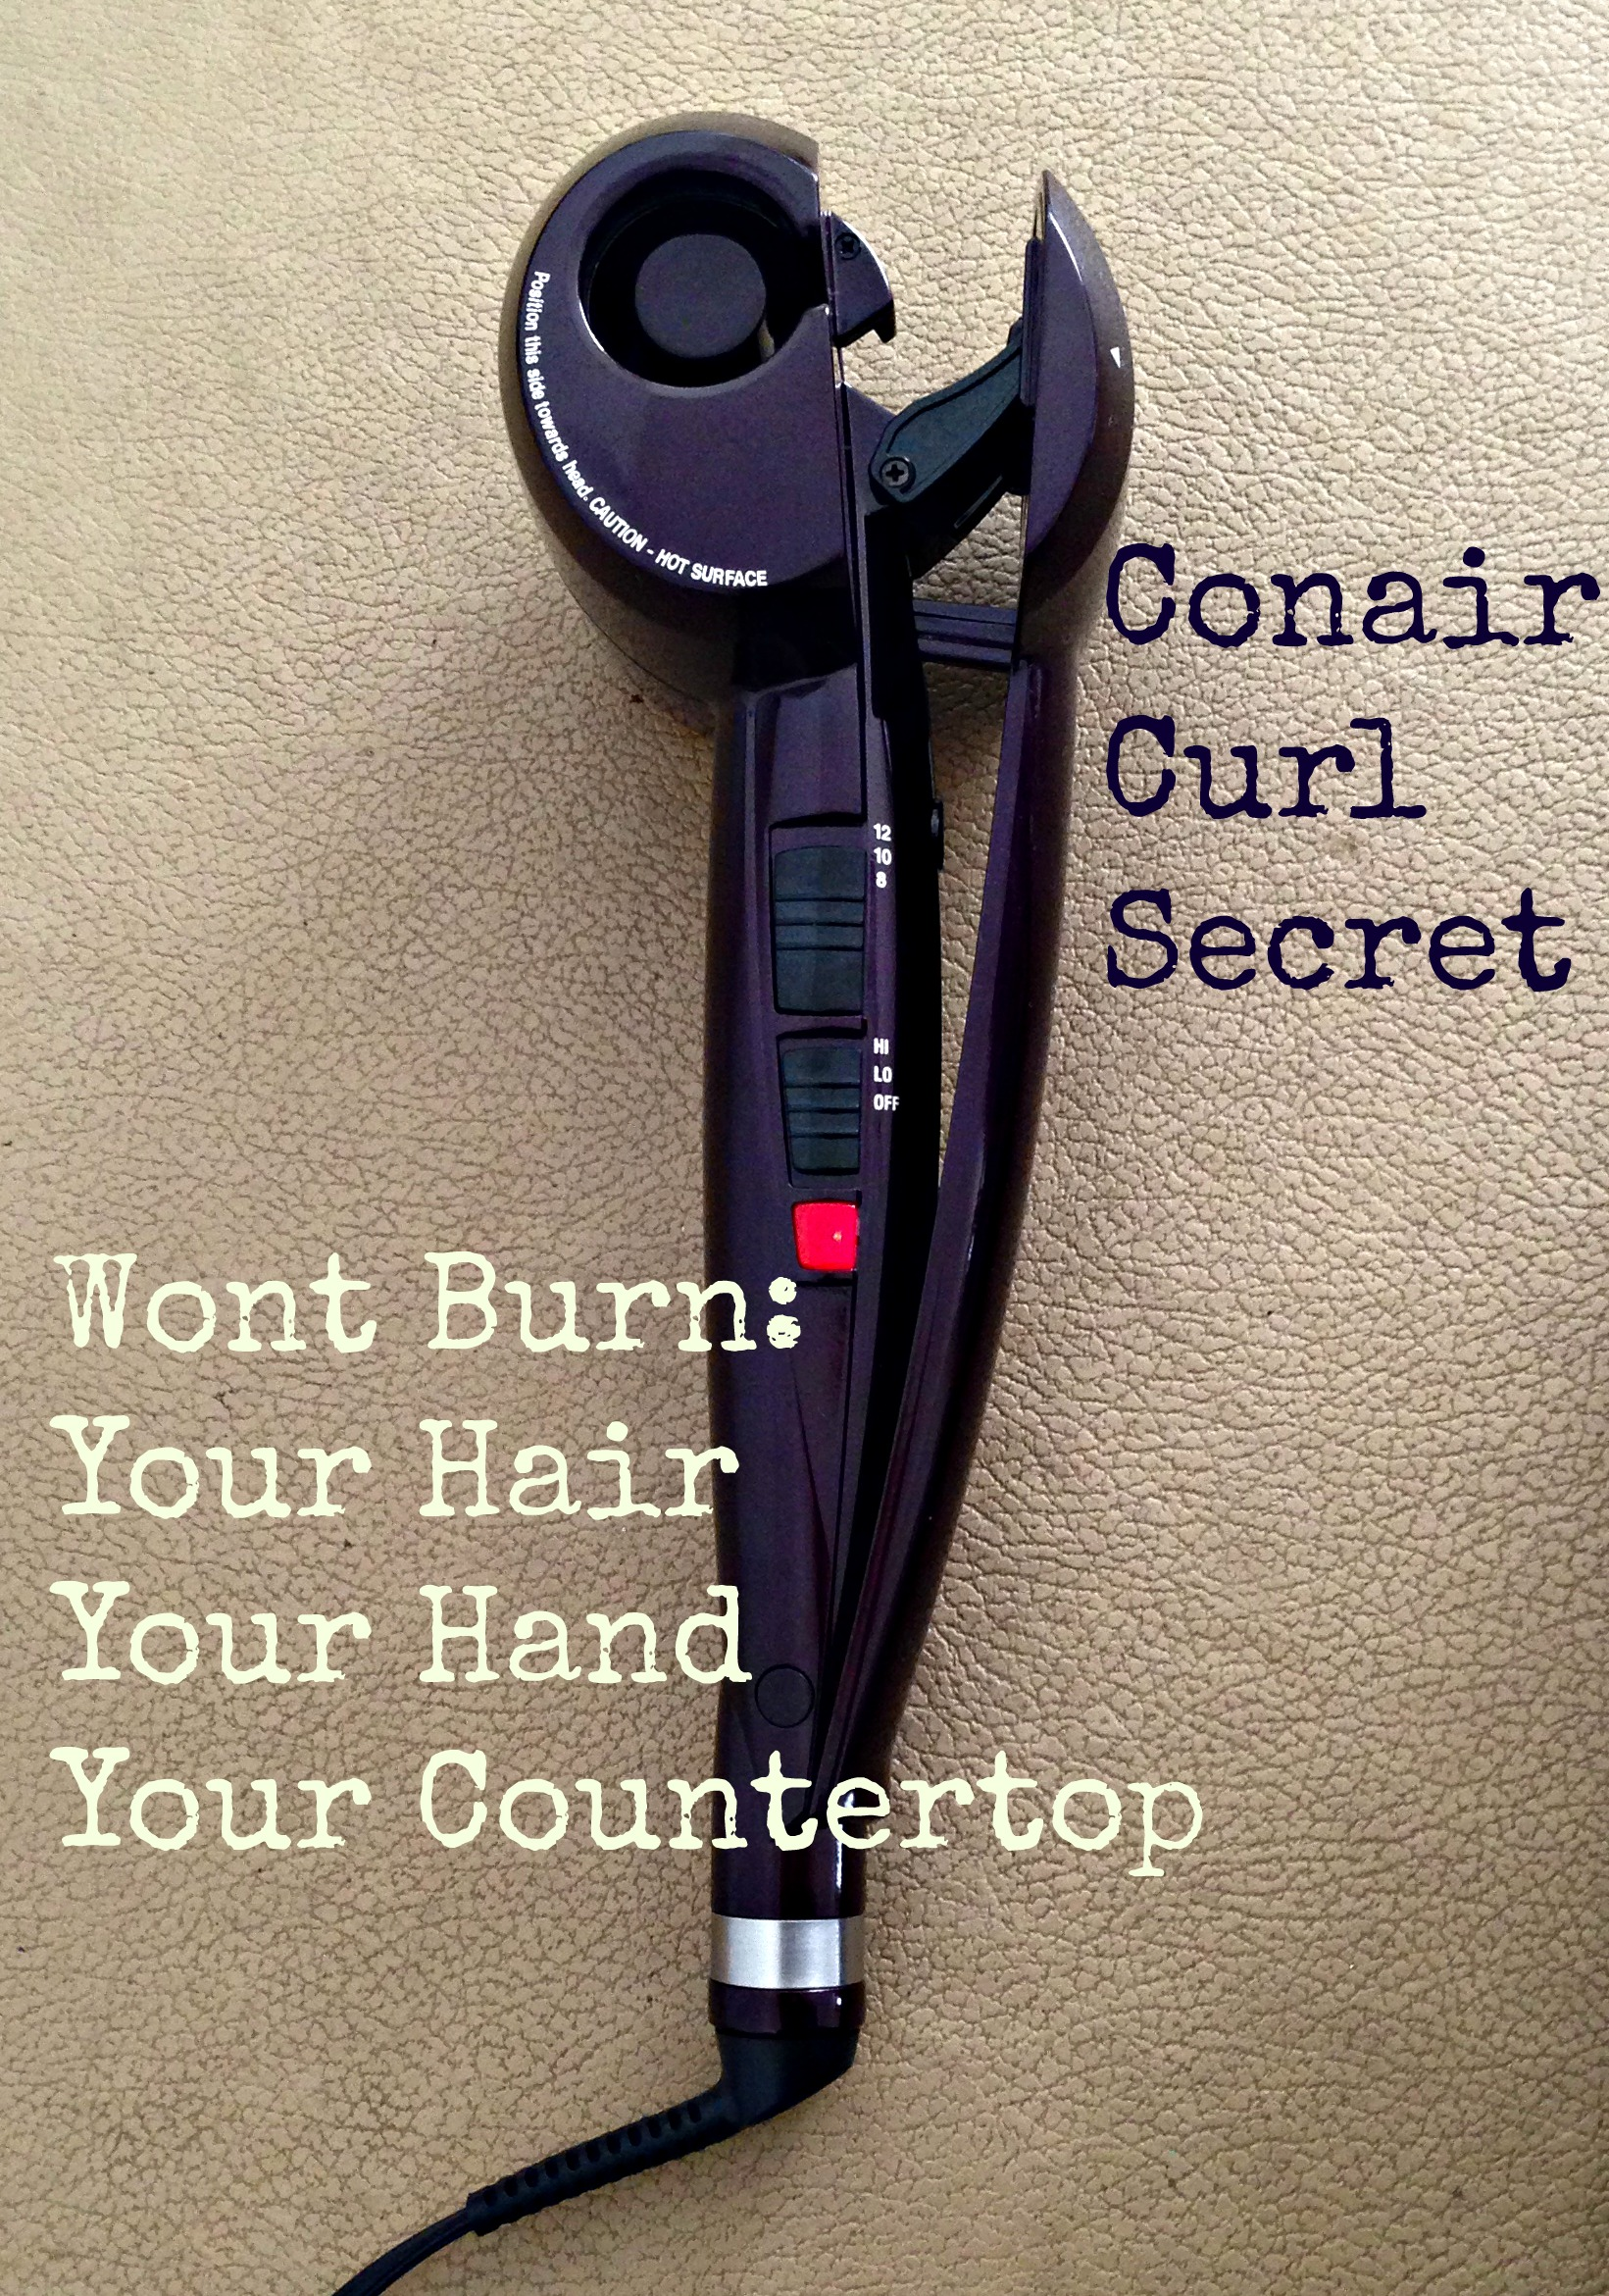 Conair Curl Secret #shop Surface Classy Black Girl CBG191310